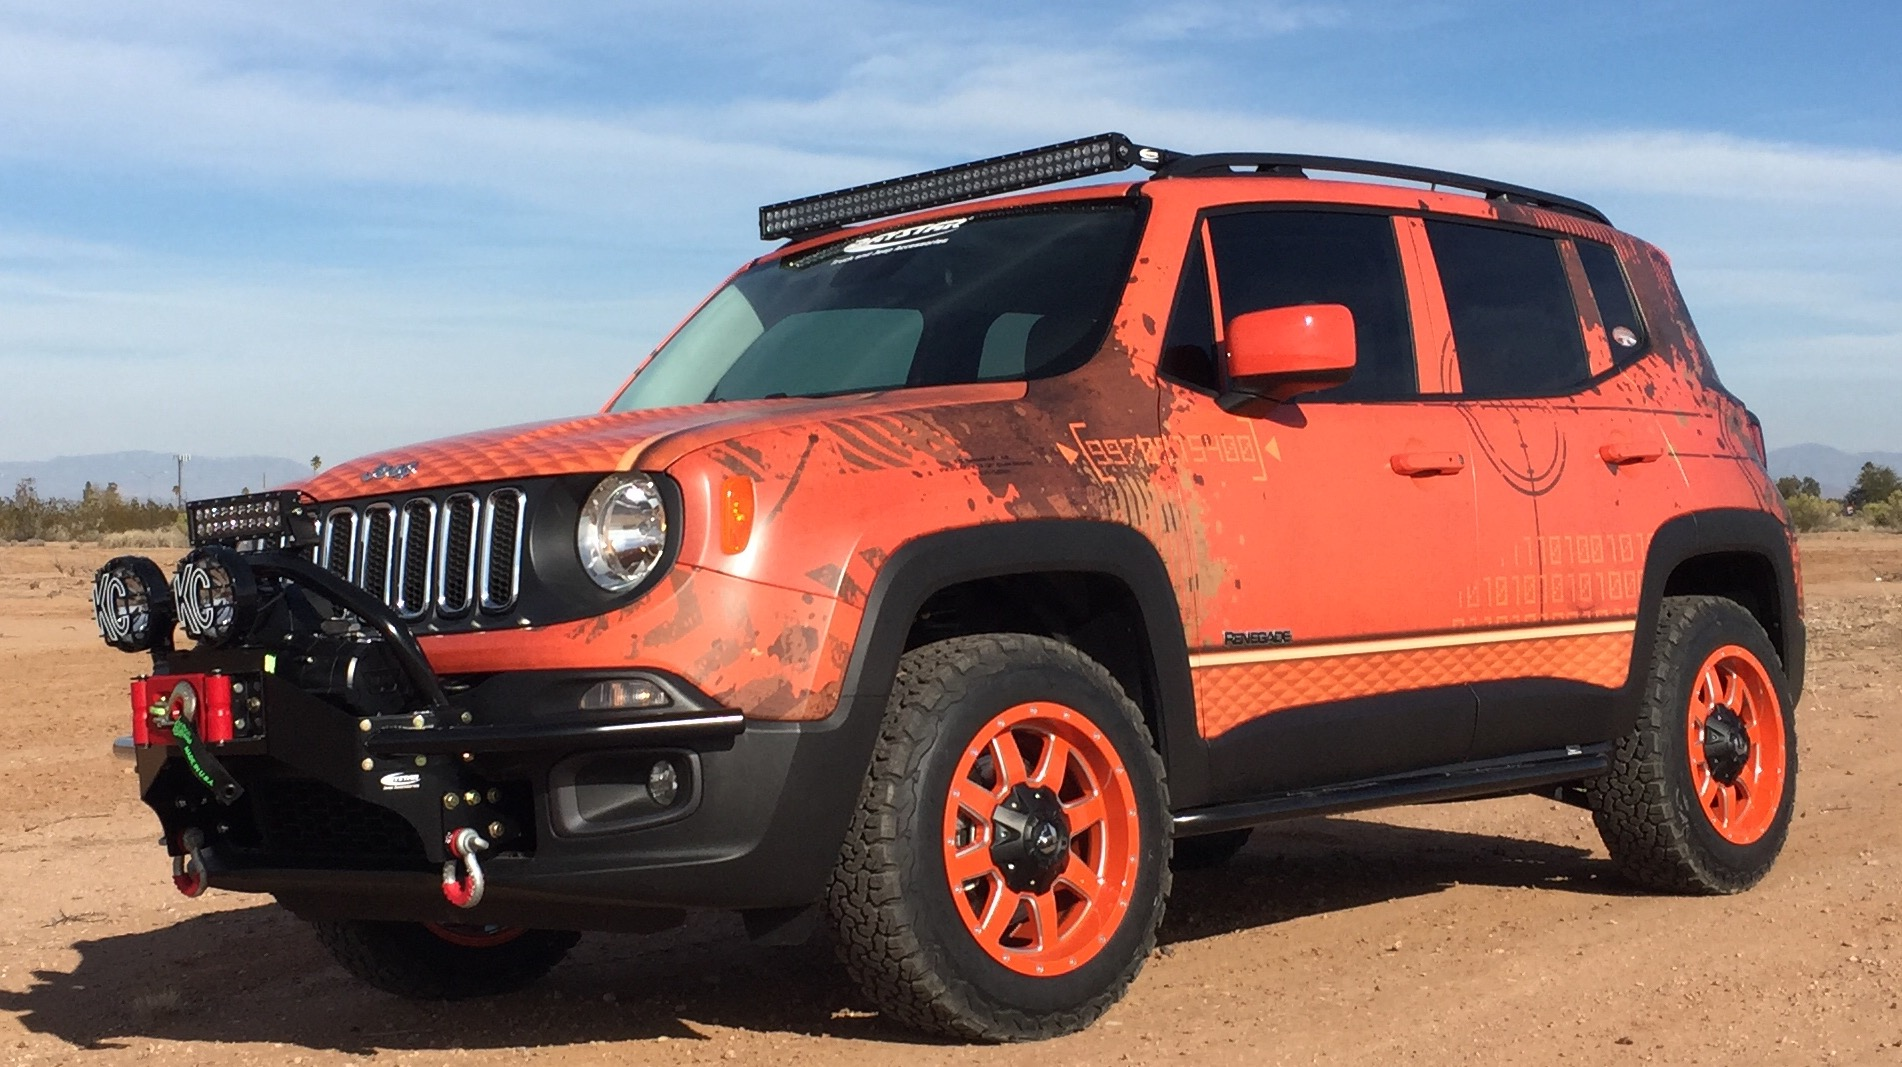 Lifted Jeep Renegade >> Sneak Peek: Daystar Renegade Goodies - JPFreek Adventure Magazine